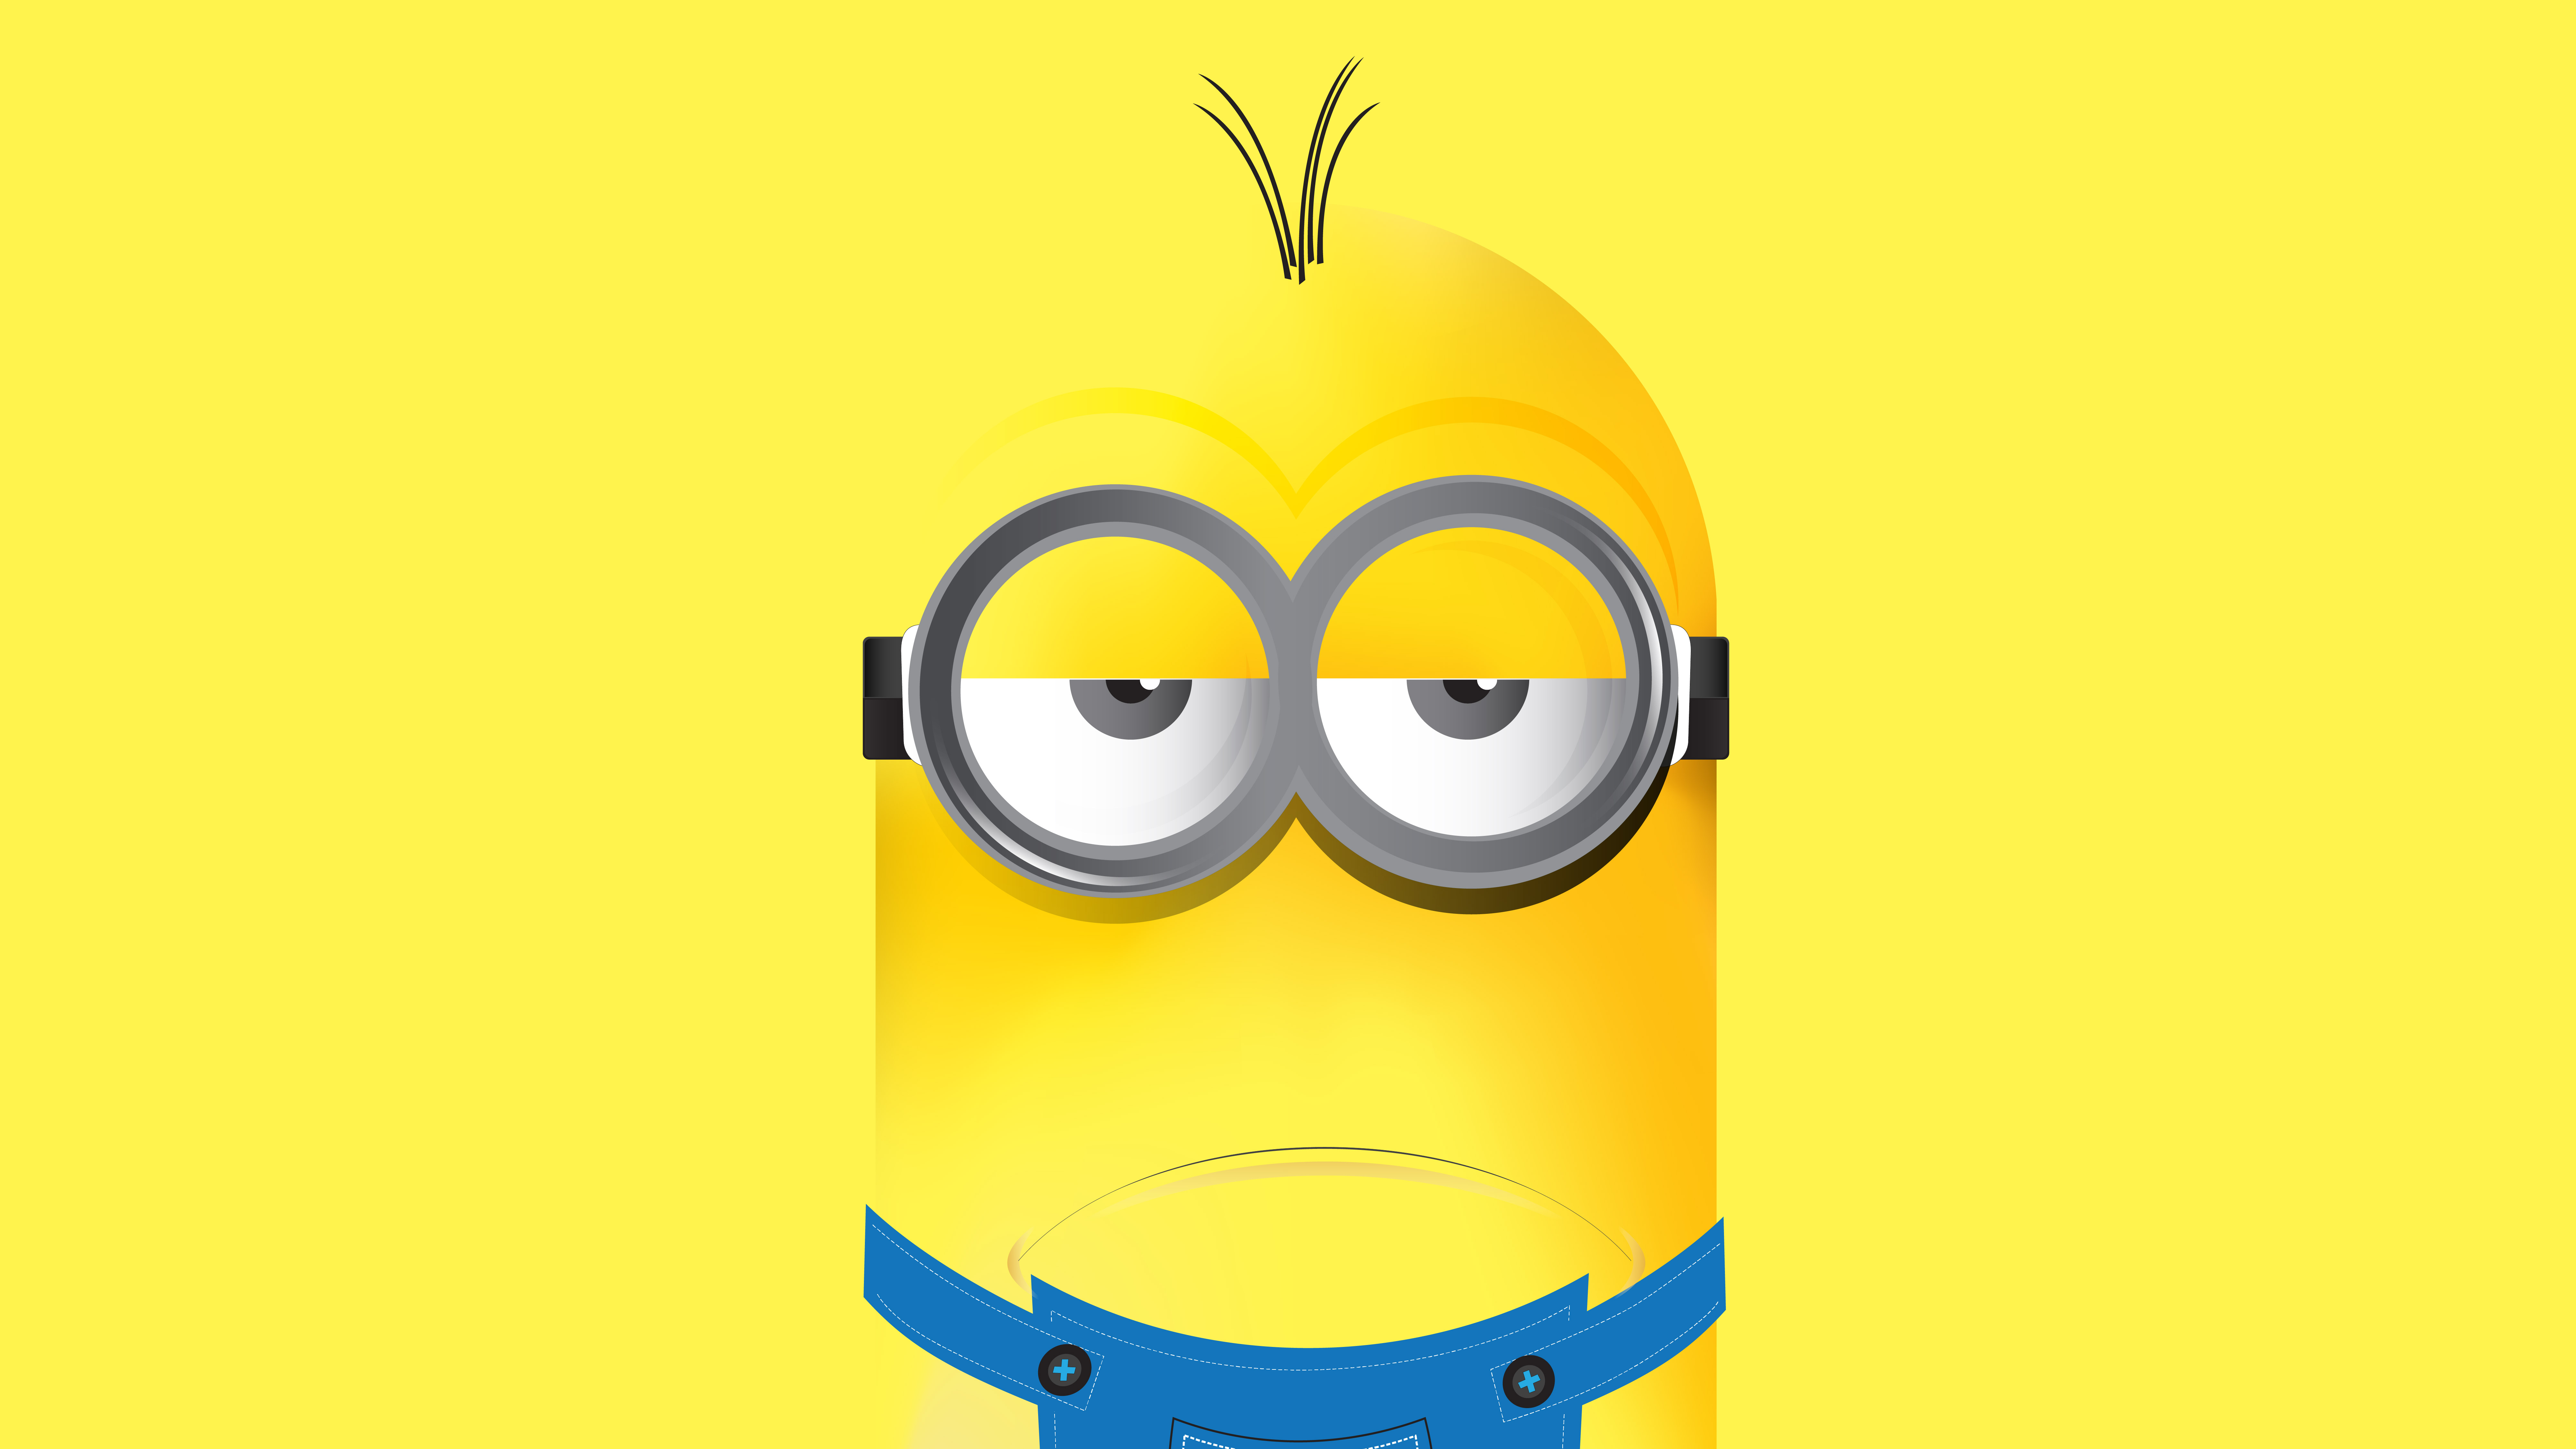 Minions 8k Background Hd Movies 4k Wallpapers Images Backgrounds Photos And Pictures Hd wallpapers and background images. hdqwalls com